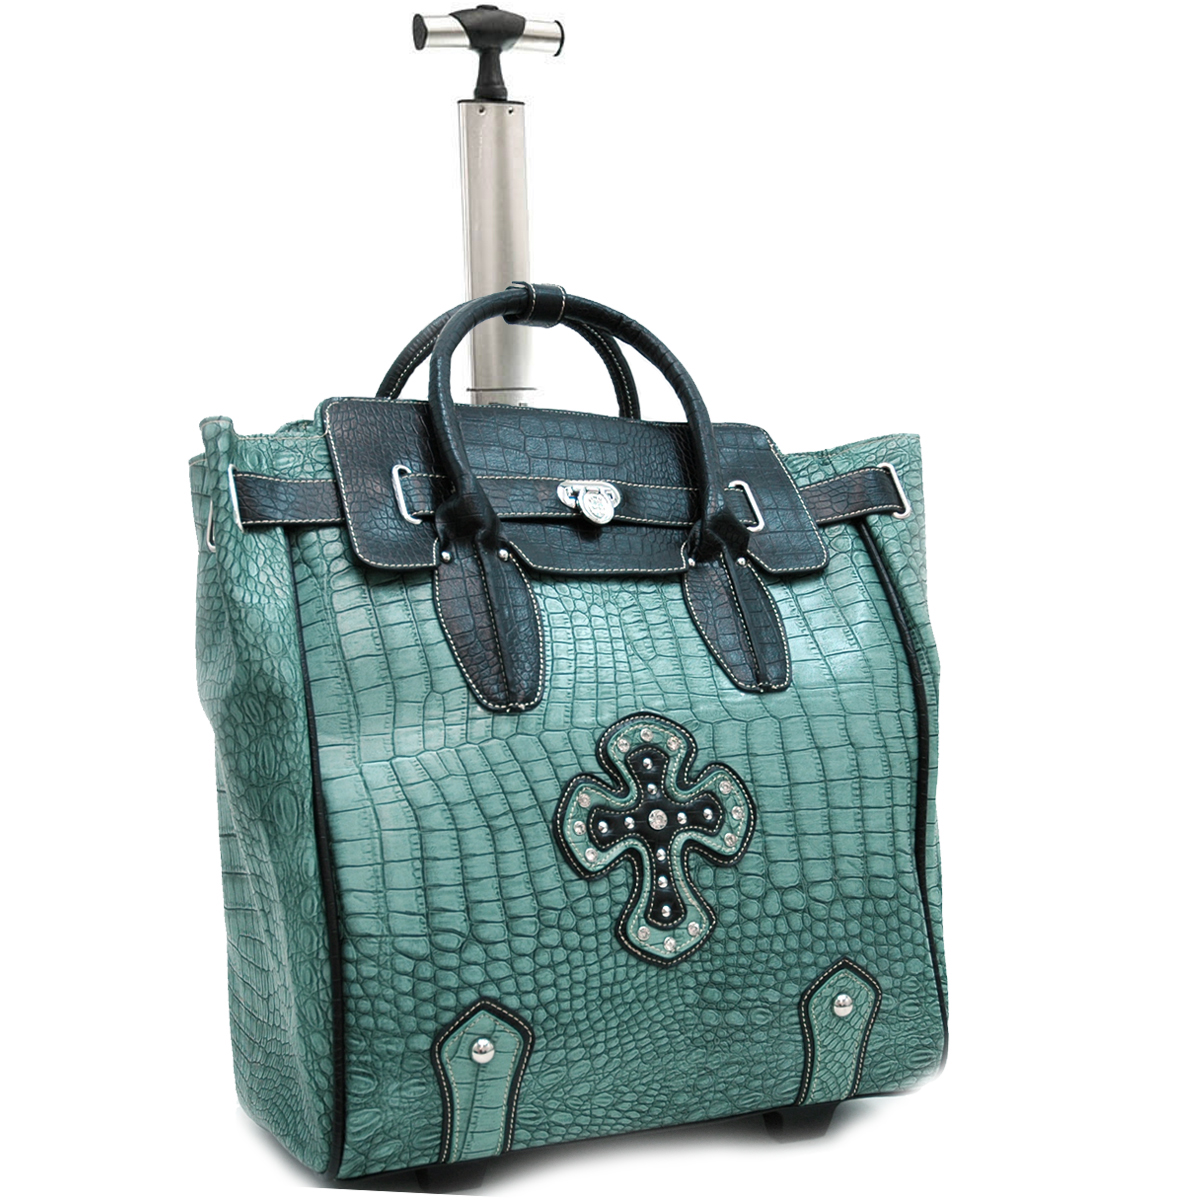 Ustyle Fashion Weekender / Oversized Tote Bag with Cross Accents-Green